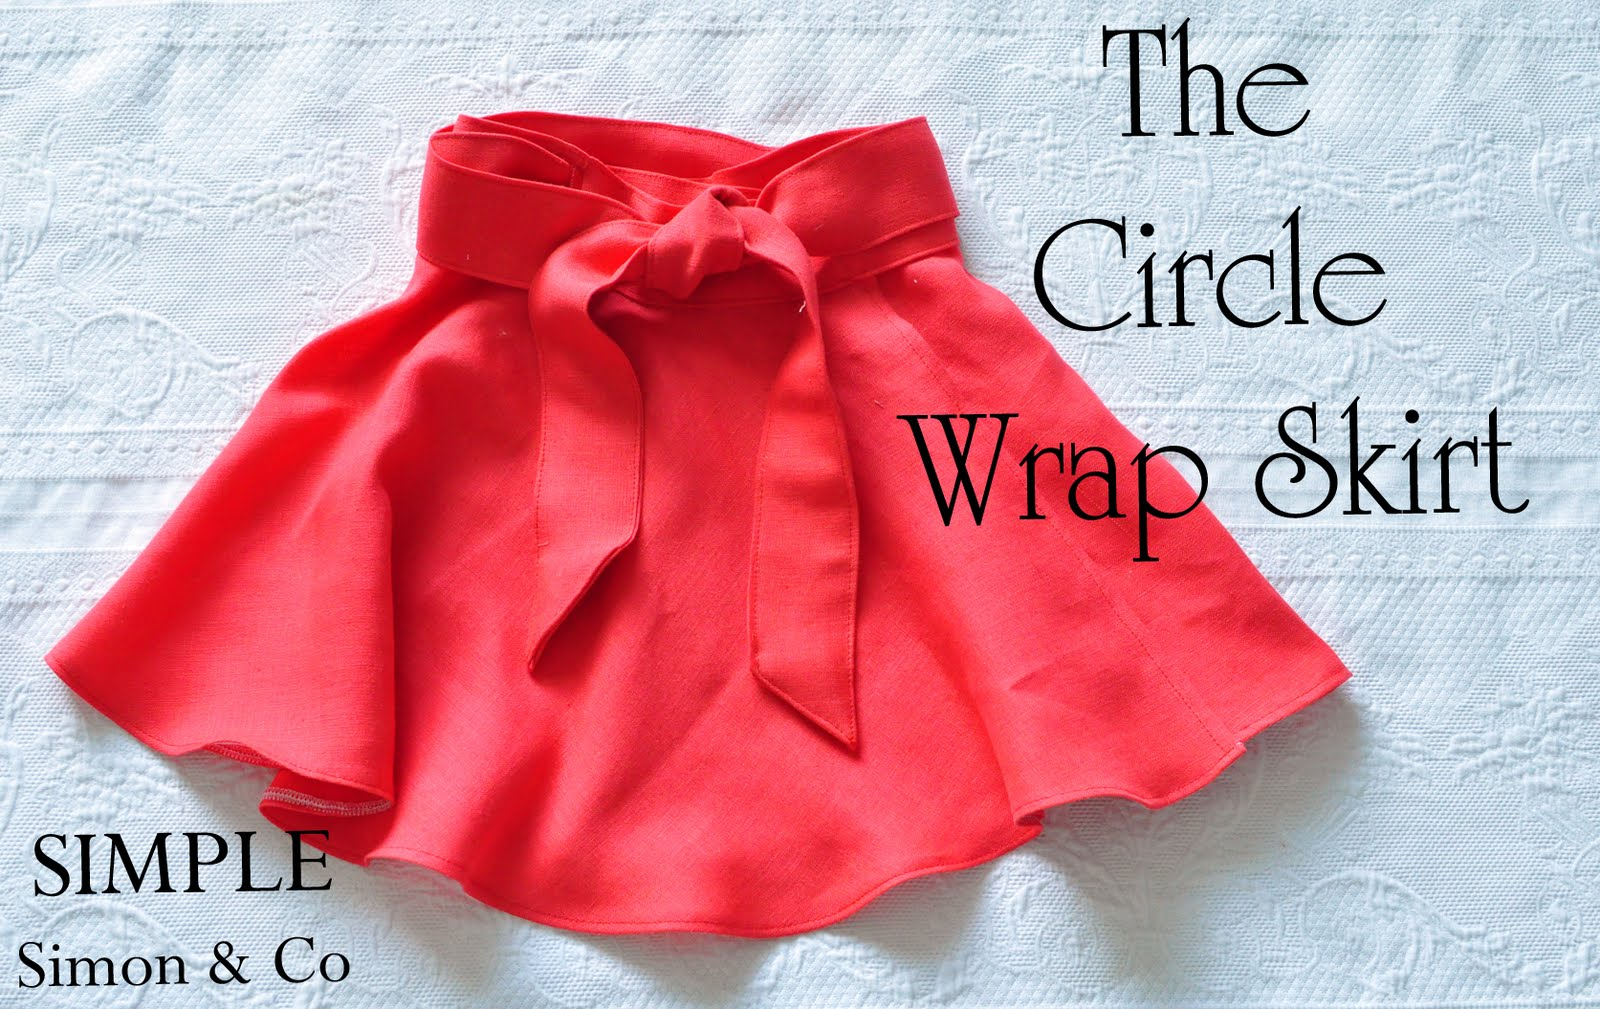 Wrap Skirt made from a Circle Skirt - Simple Simon and Company